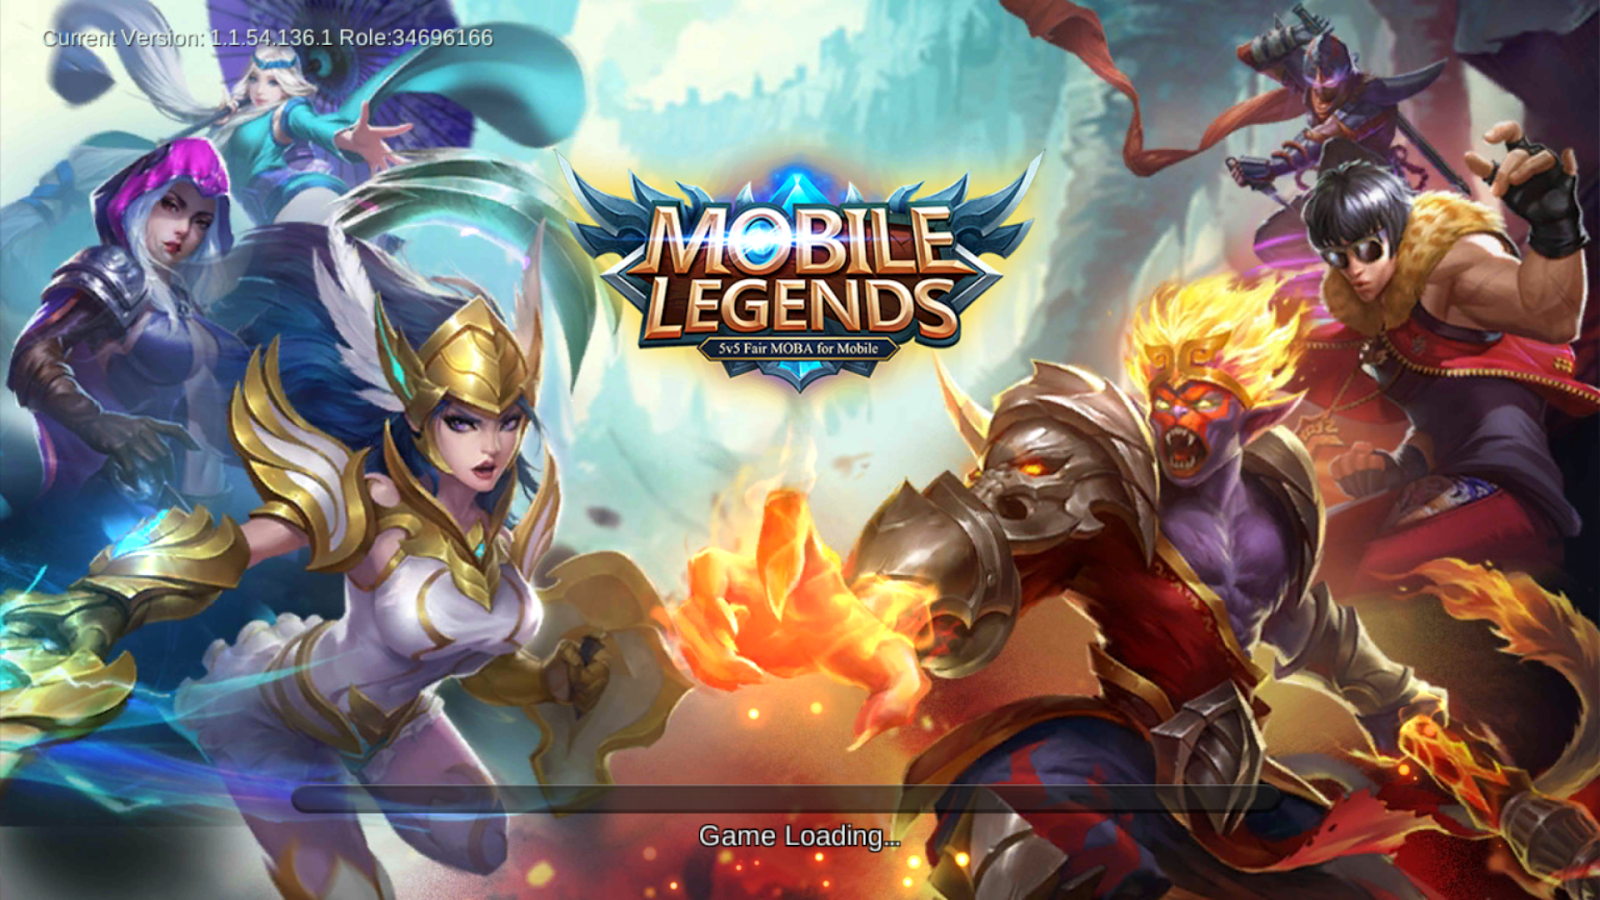 Hd wallpaper mobile legends -  Computer But In Your Mobile Phones Mobile Legends Bang Bang Developed By Moonton I Recommend This Than Other Available Moba App In Playstore Because